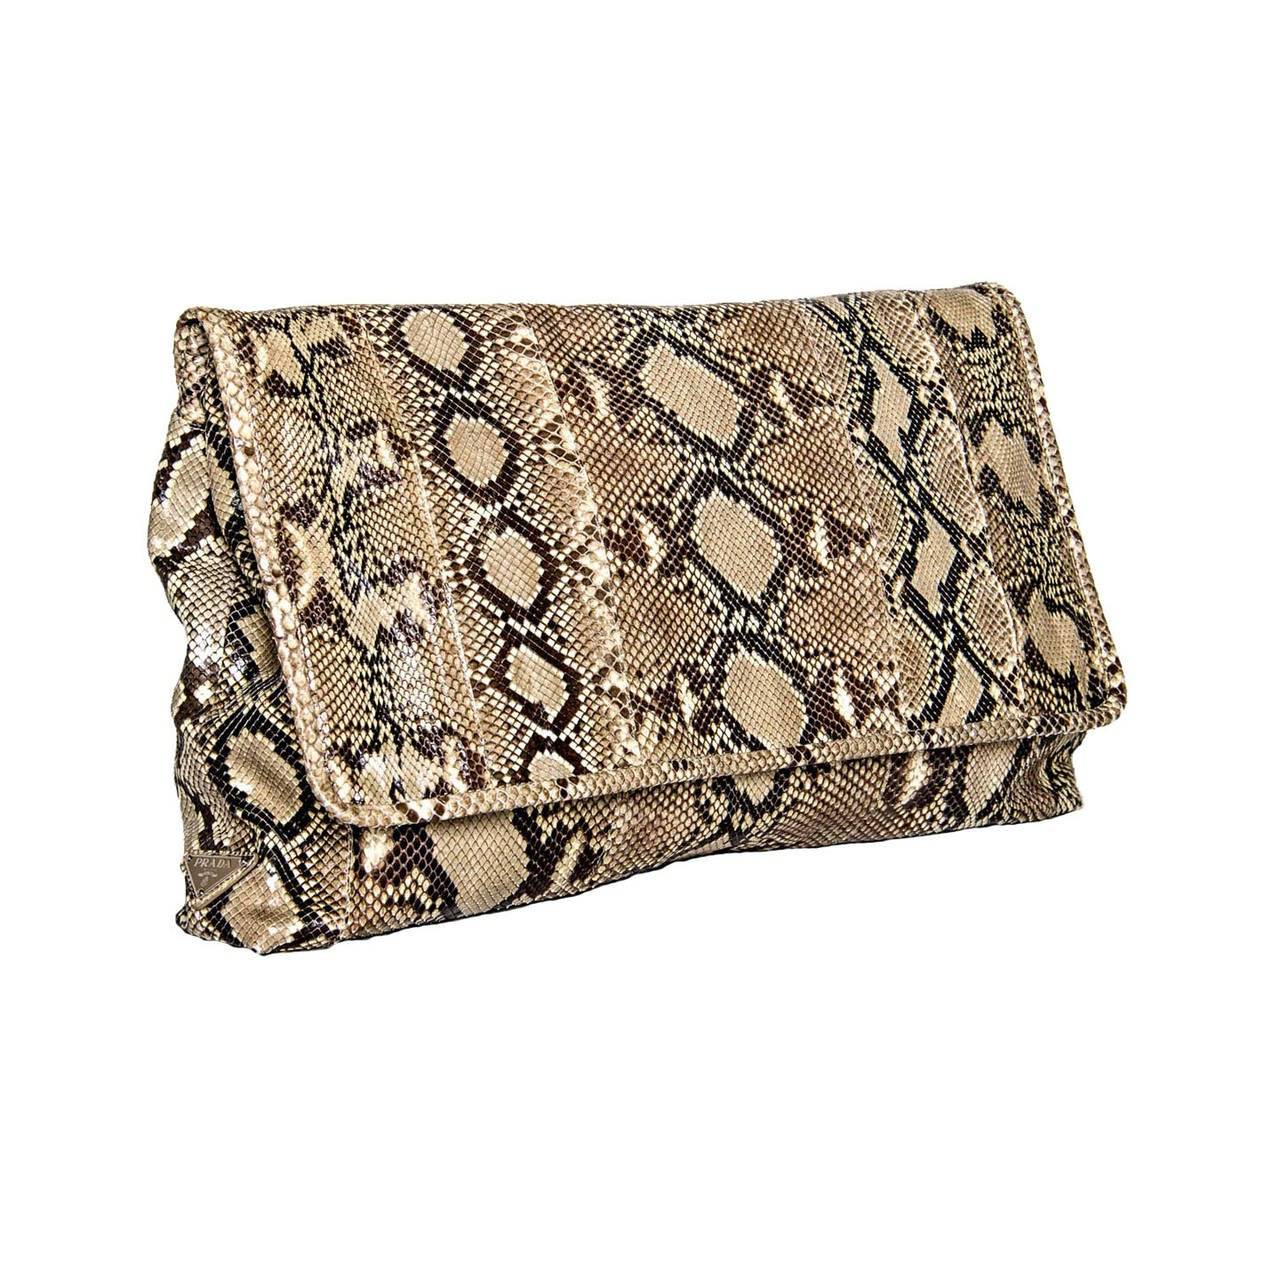 e38f639daa Chocolate brown and beige python large clutch bag with self-fabric binding  to cover the